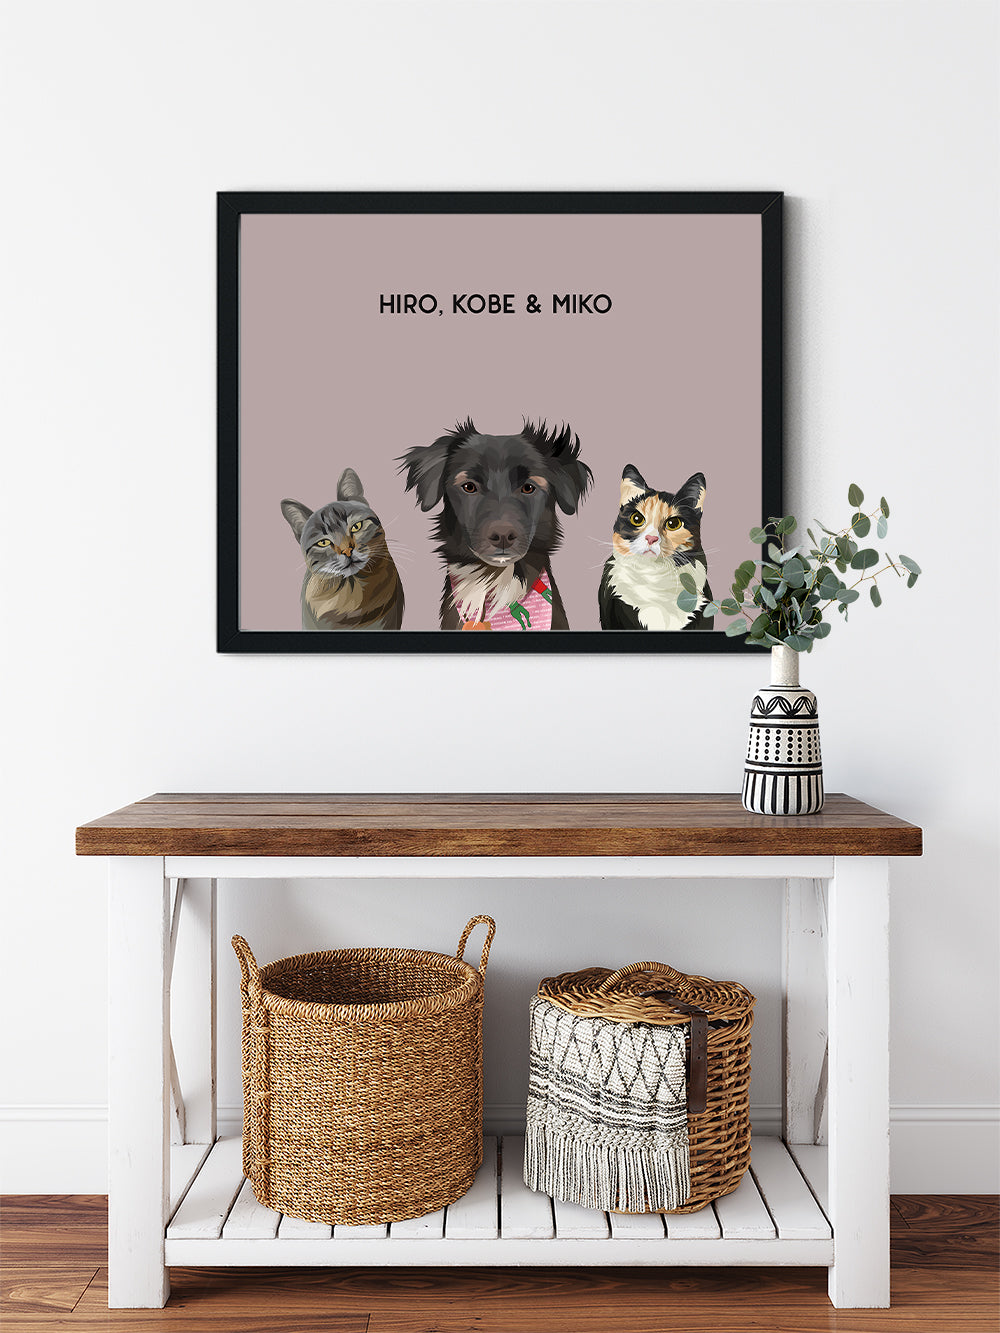 Trio custom framed pet portrait of a cat, dog and cat on blush pink background with black frame. Personalized name of cat, dog and cat in black font.